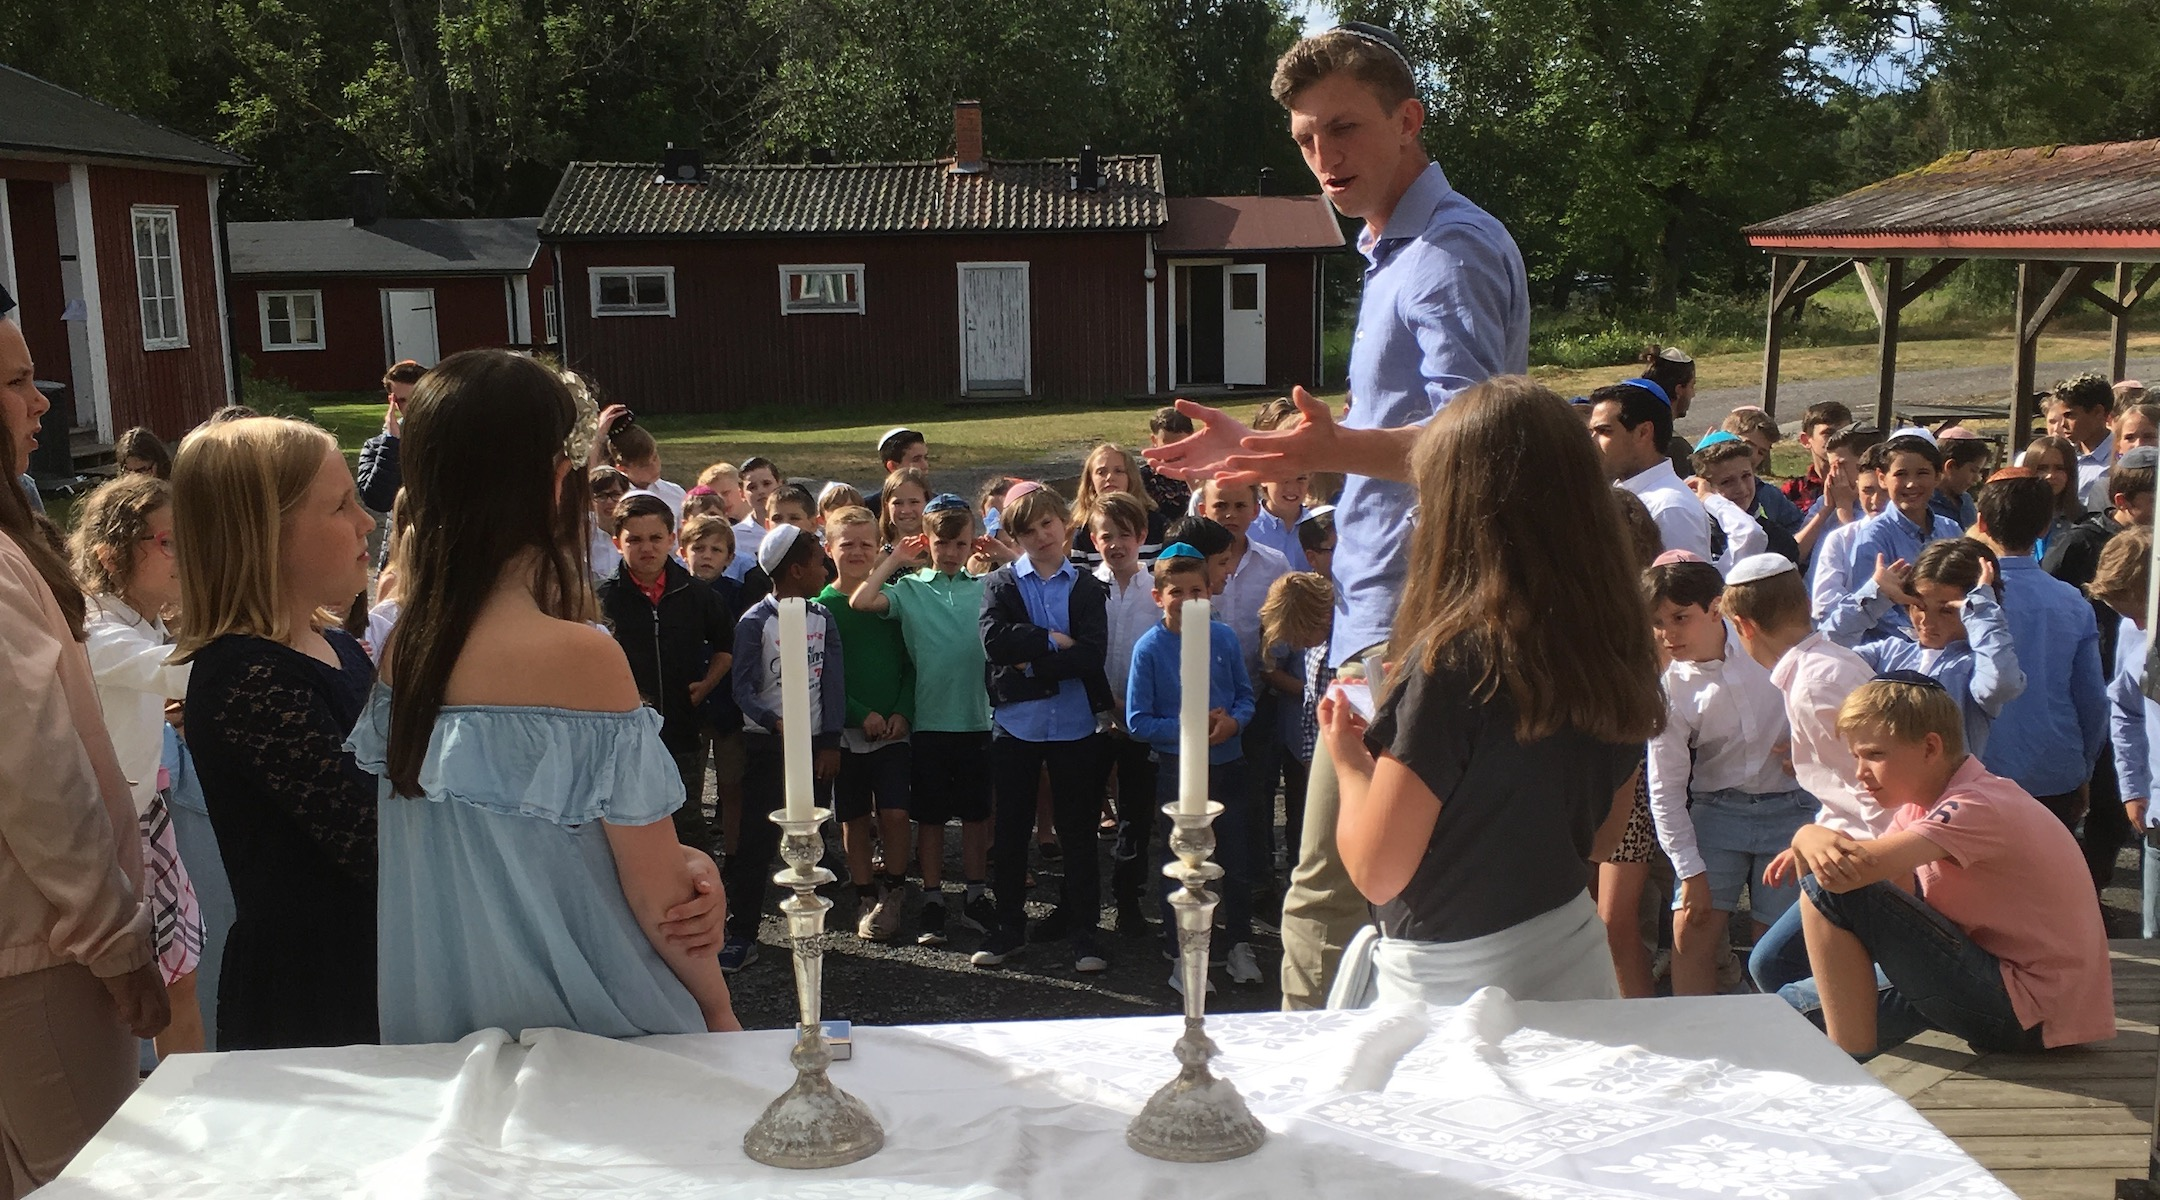 What it's like to go to Sweden's only Jewish overnight summer camp